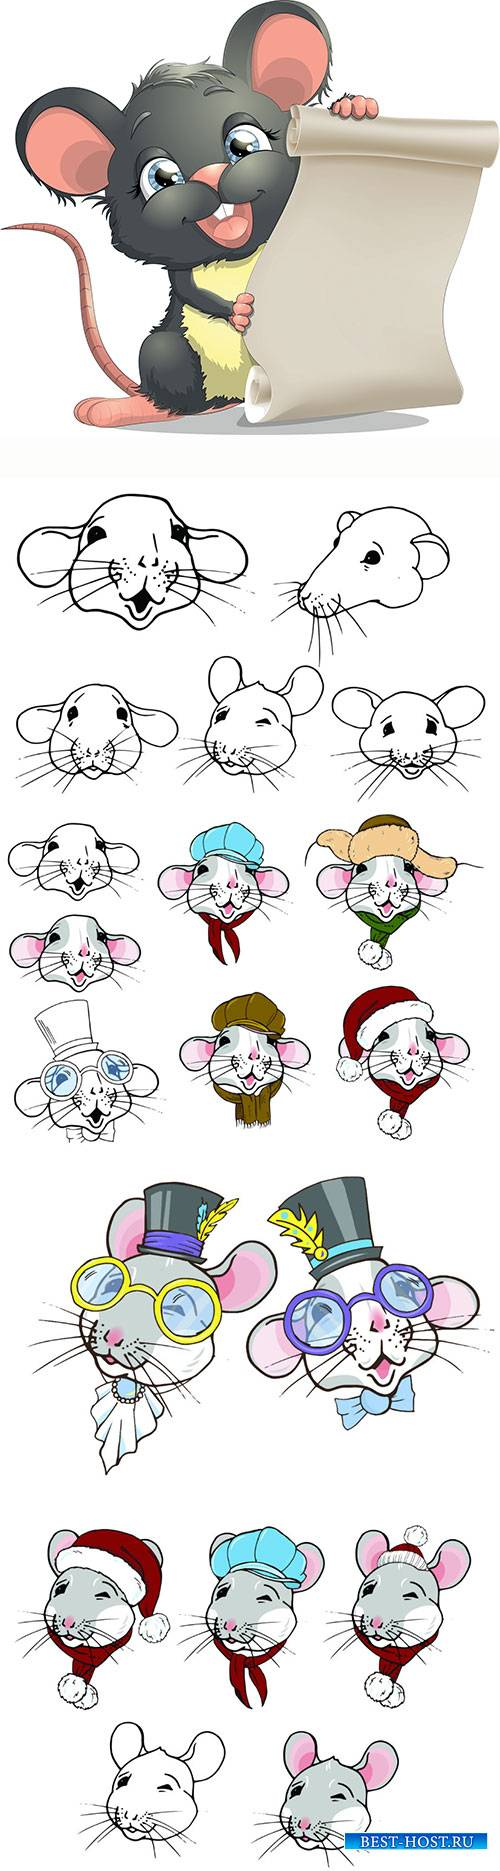 Rats, symbol of the year 2020 according to the Chinese calendar